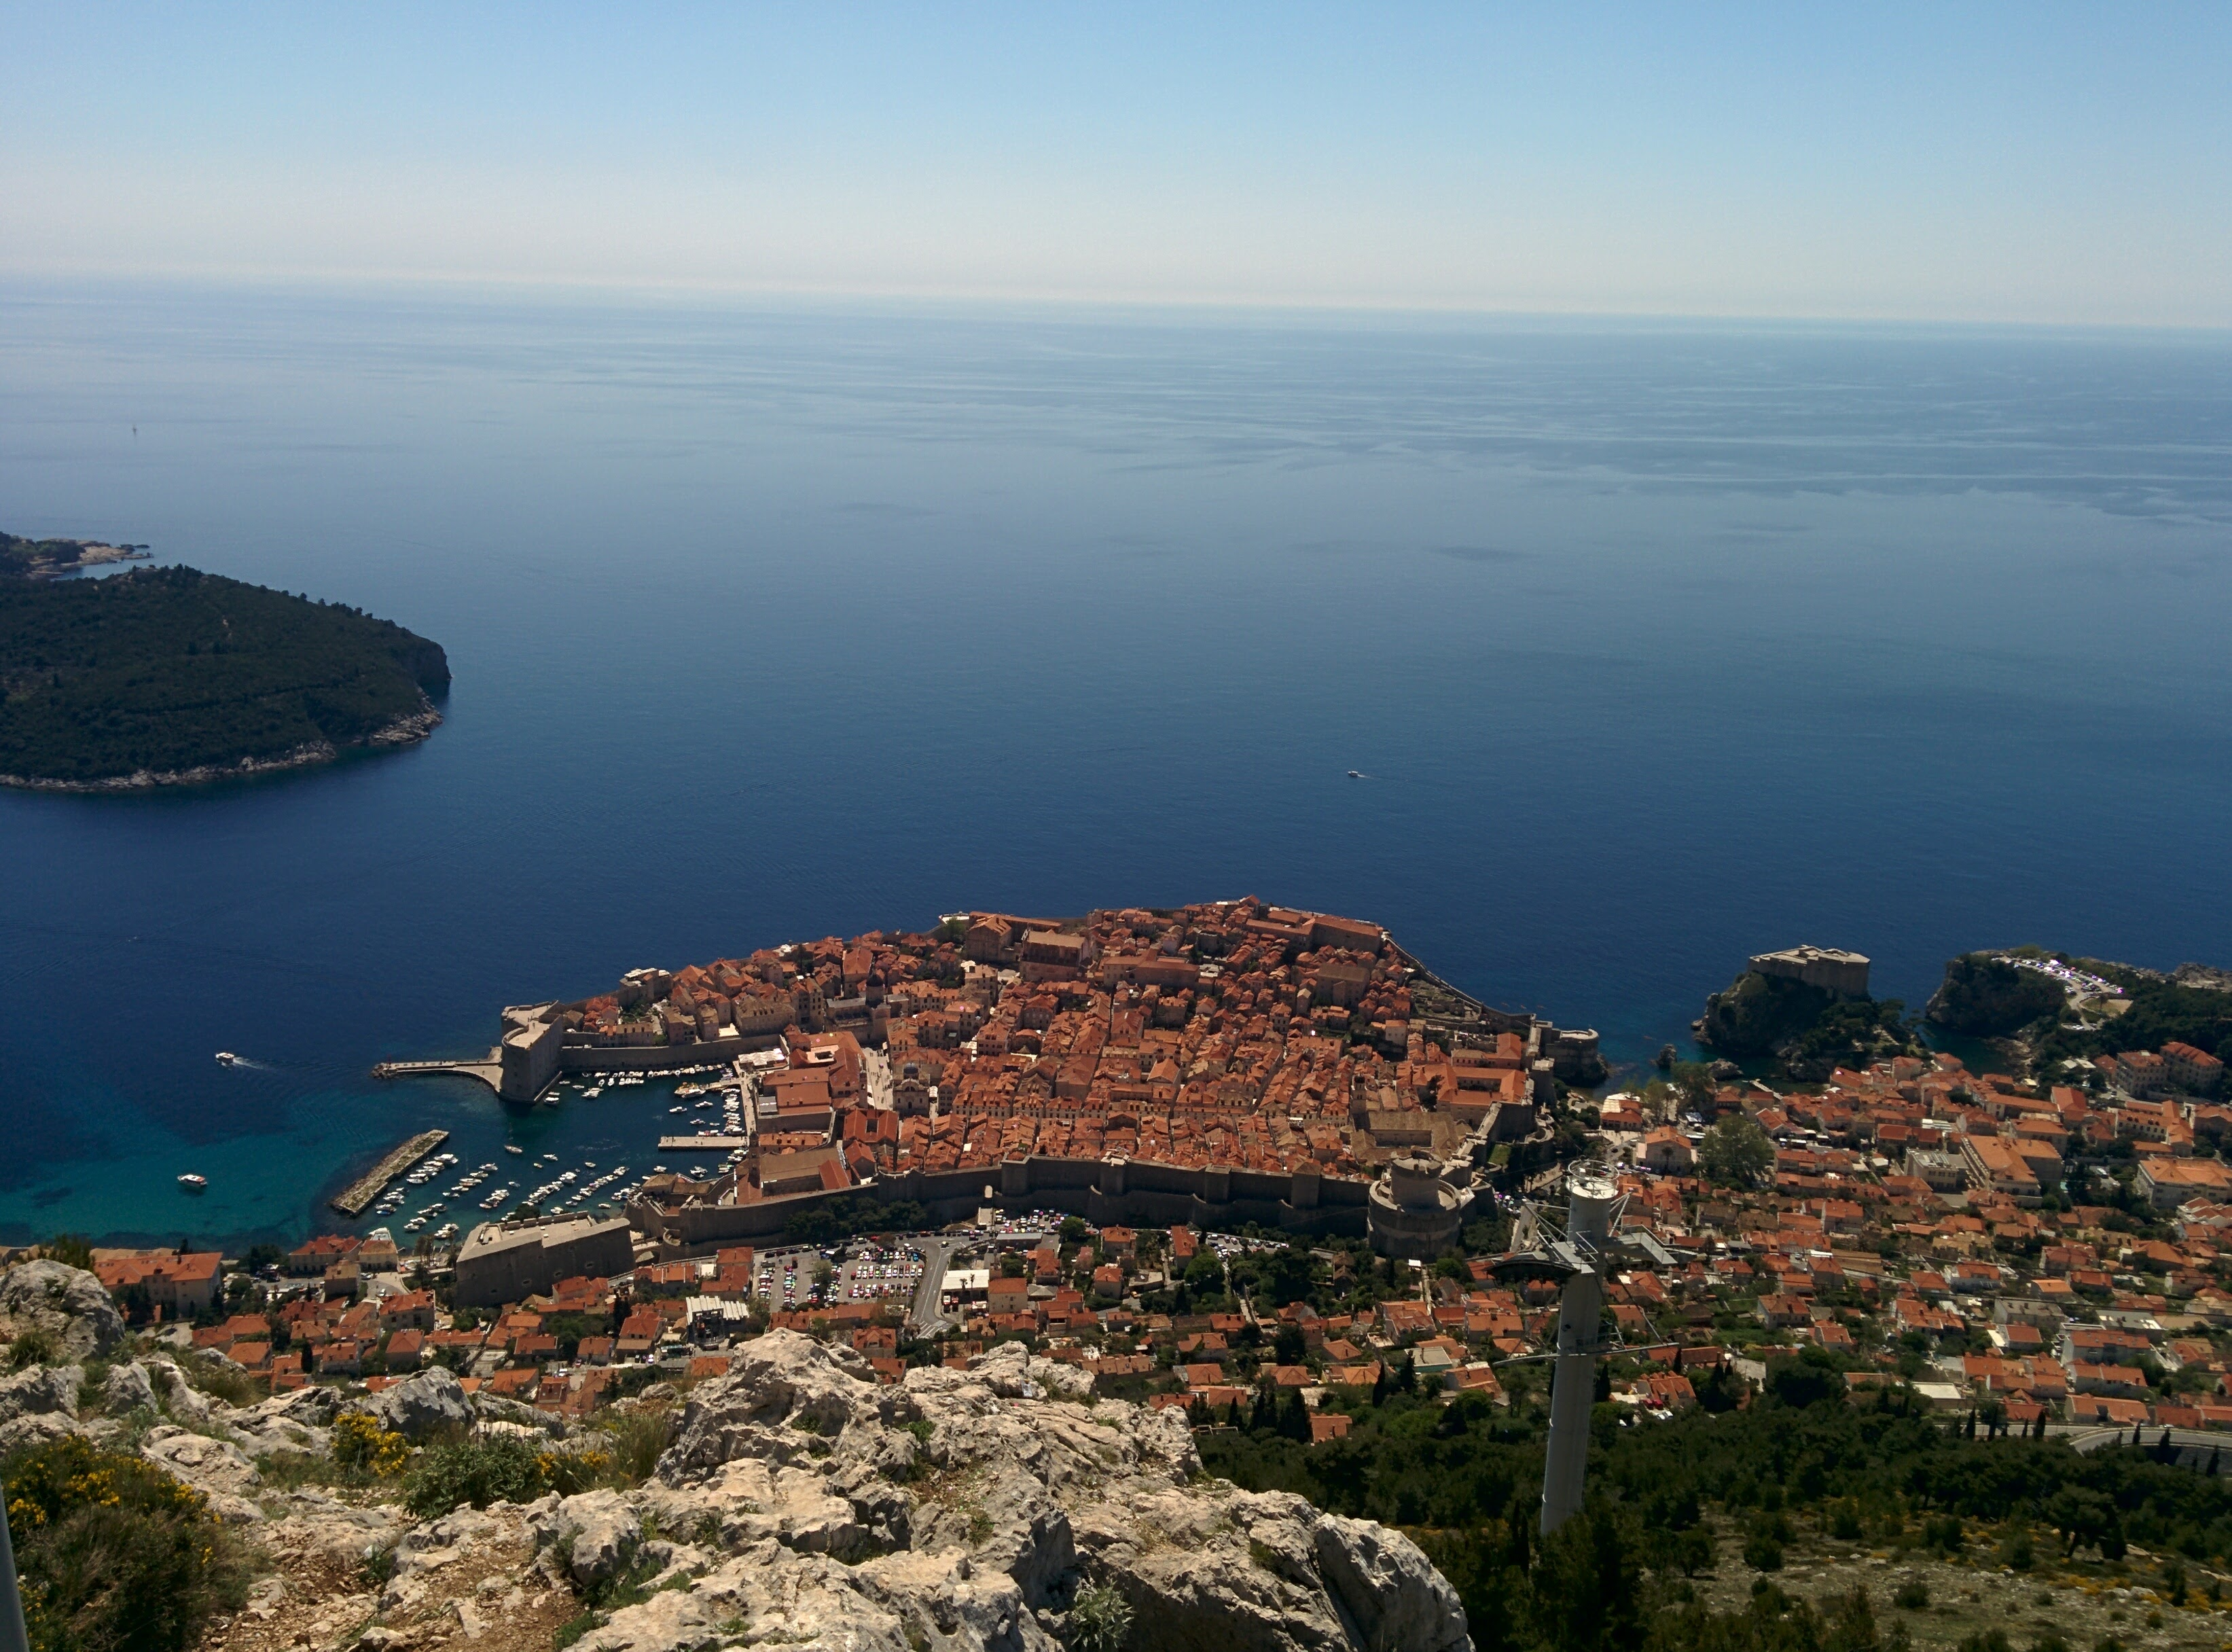 Terracotta rooftops in the Dubrovnik old town viewed from above. Island of Lokrum in the distance.